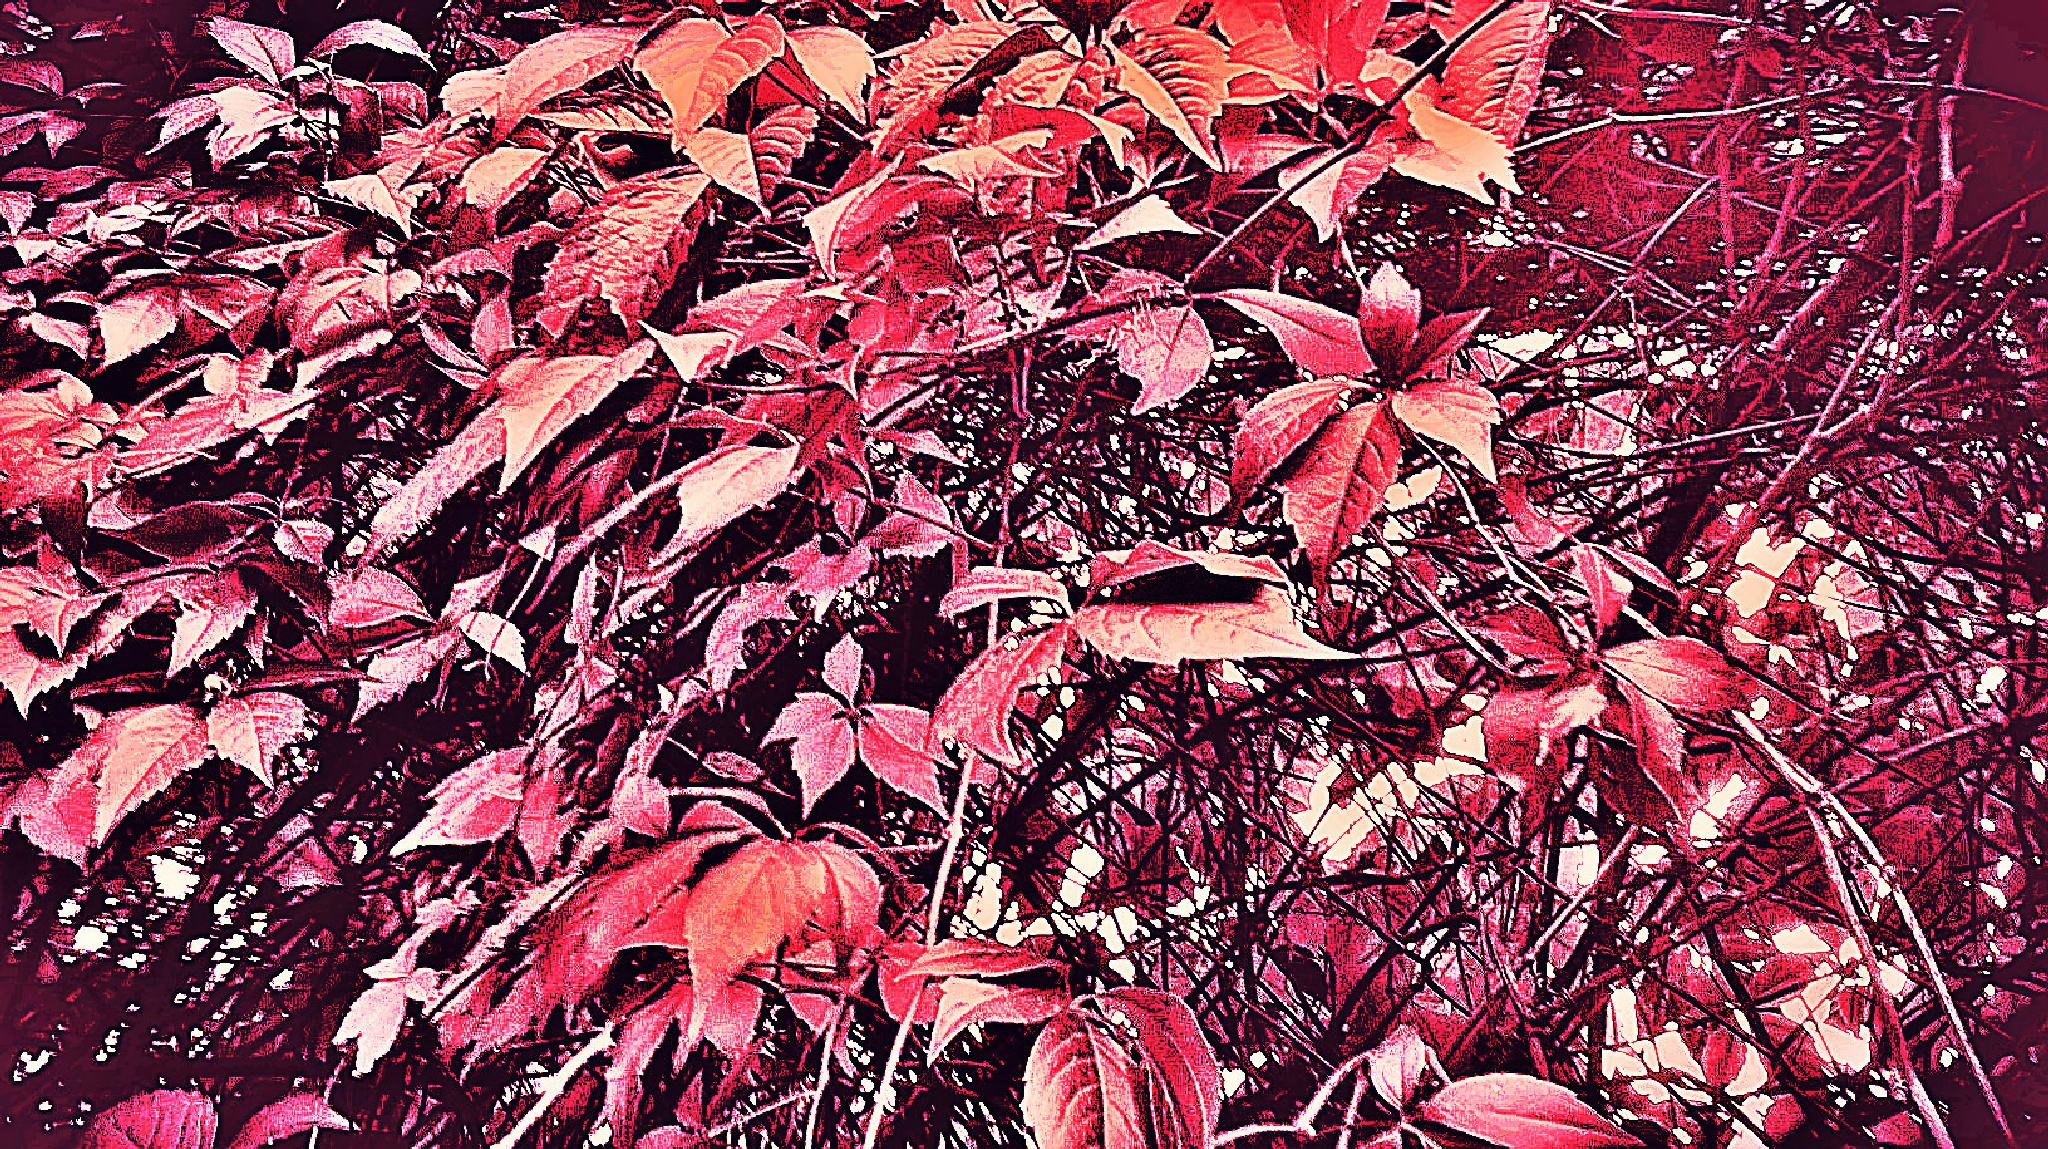 Autumn leaves by Autumn Leaves